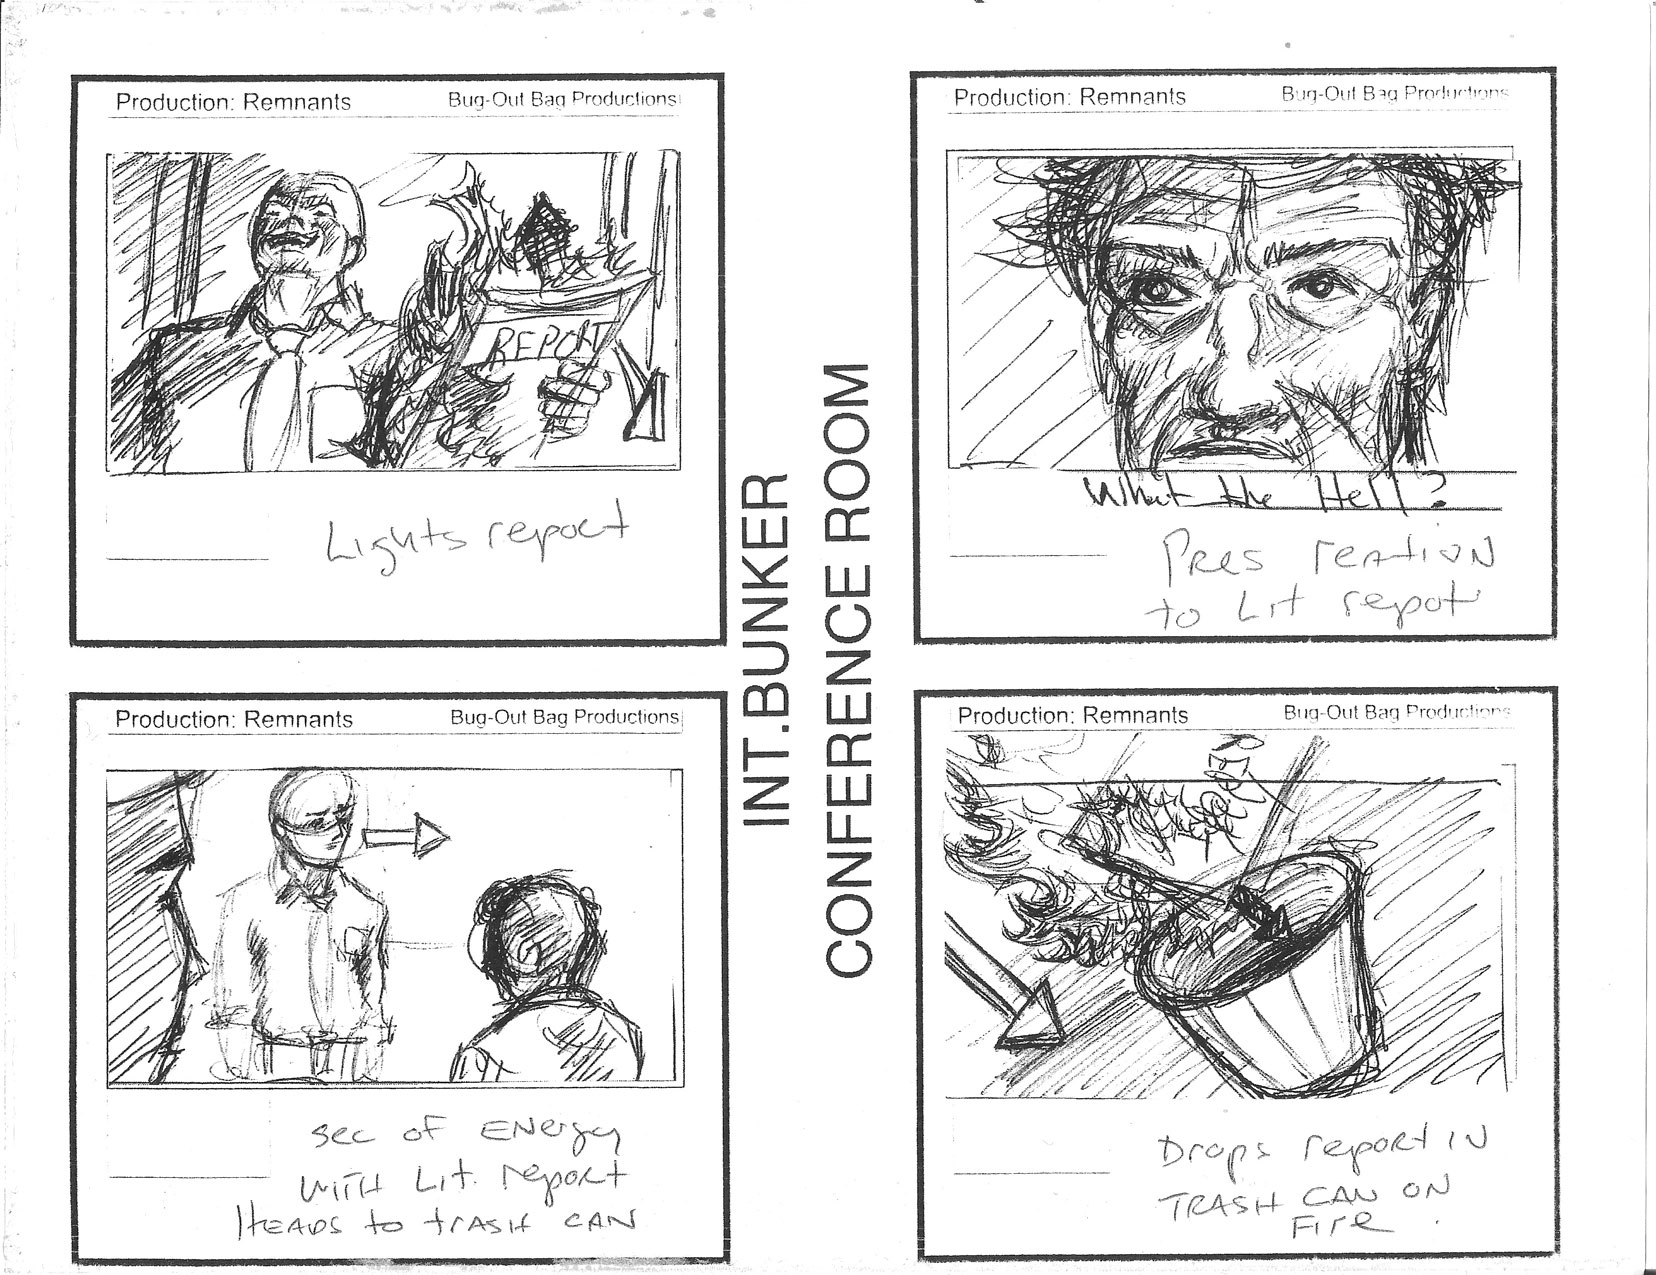 Remnants_storyboards_055.jpg